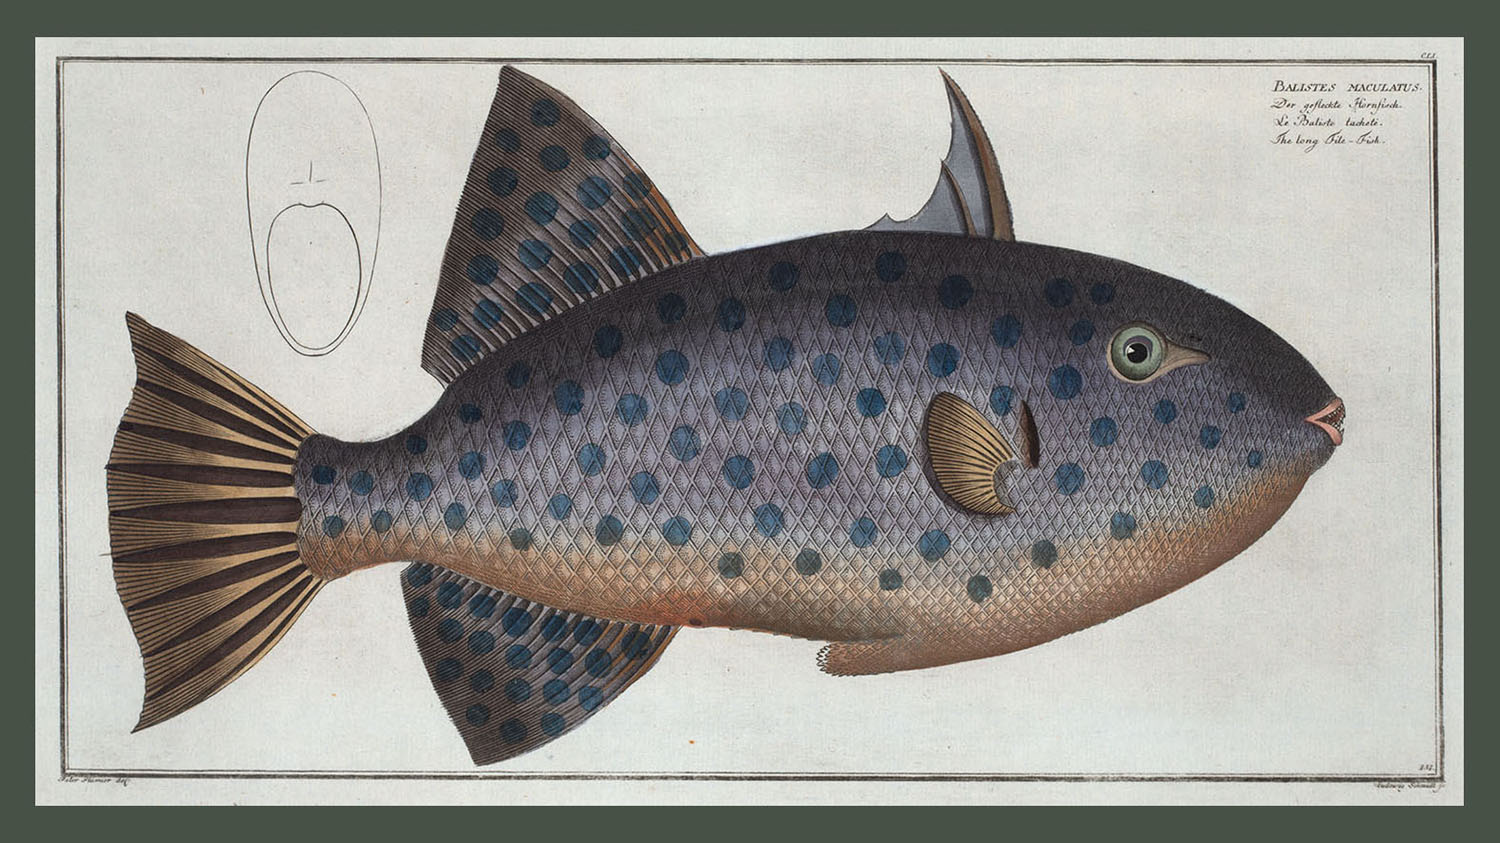 <i>Balistes maculatus, The long File-Fish</i>. (Courtesy Rare Book Division, The New York Public Library, Digital Collections.)